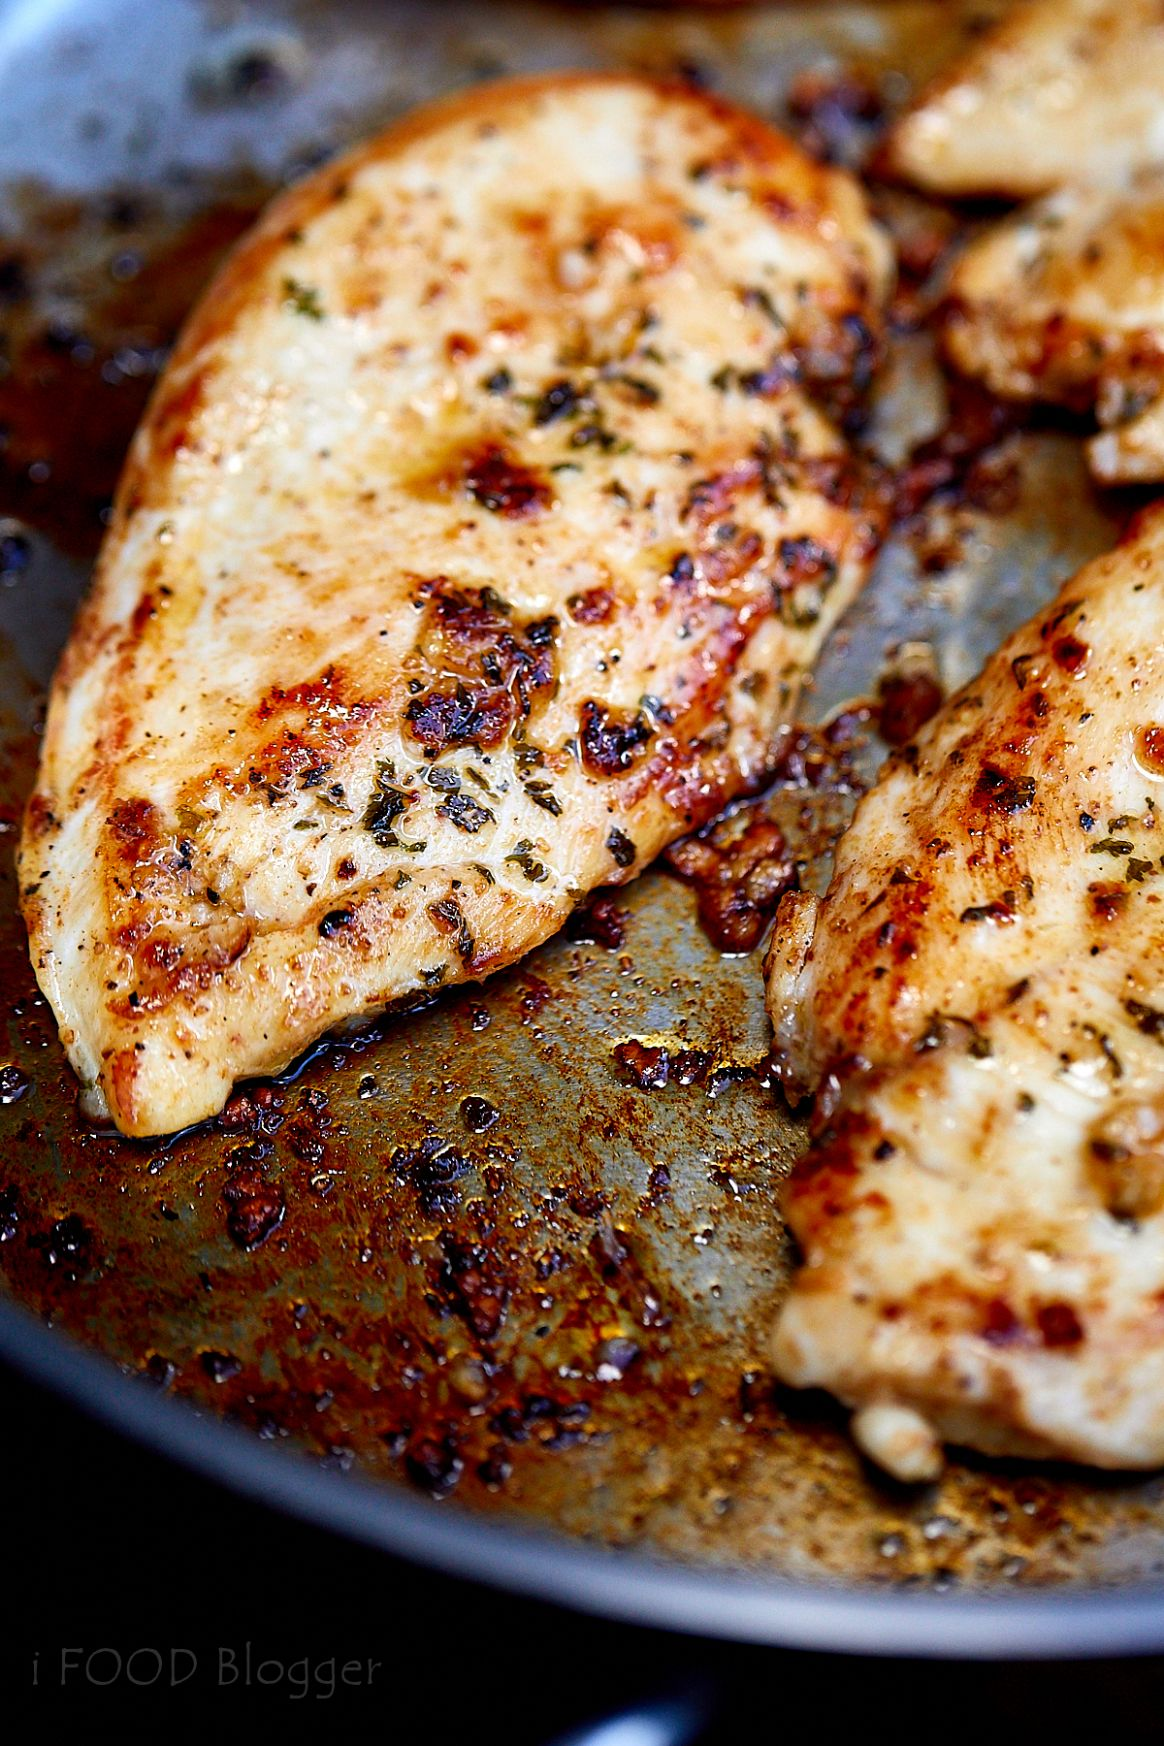 11-Minute Pan-Fried Chicken Breast - Recipes For Chicken Breast Quick And Easy